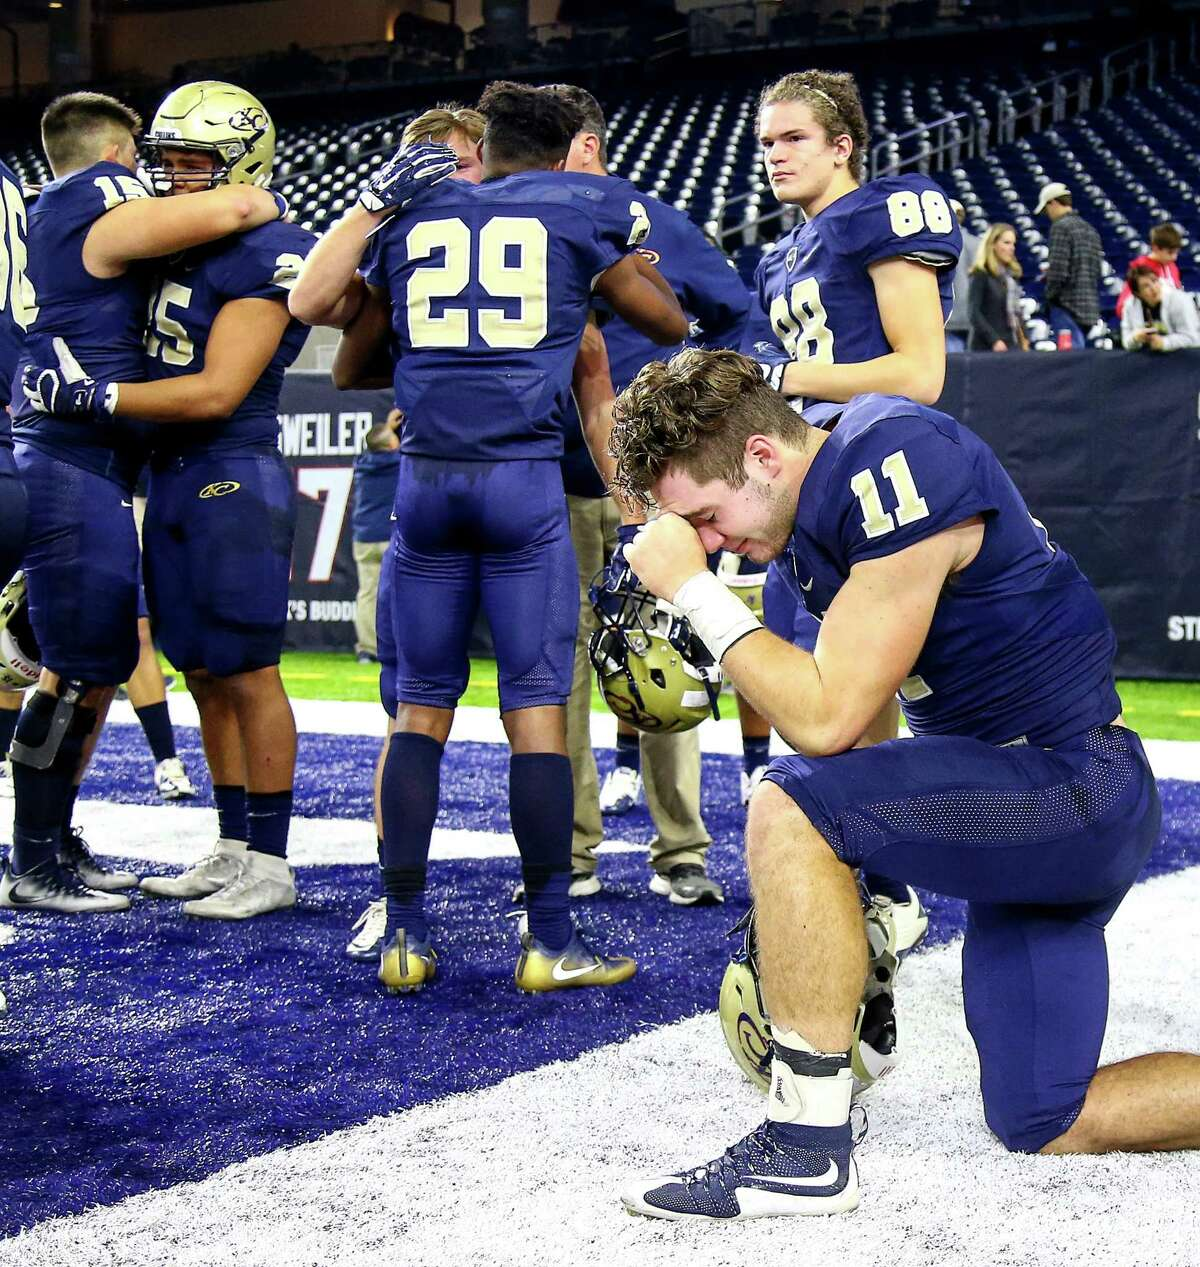 Klein Collins wide receiver Zach Skrehot (11) takes a knee while teammates hug and cry after losing to DeSoto in the Class 6A, Division II state semifinals, at NRG Stadium, Saturday, Dec. 10, 2016, in Houston.